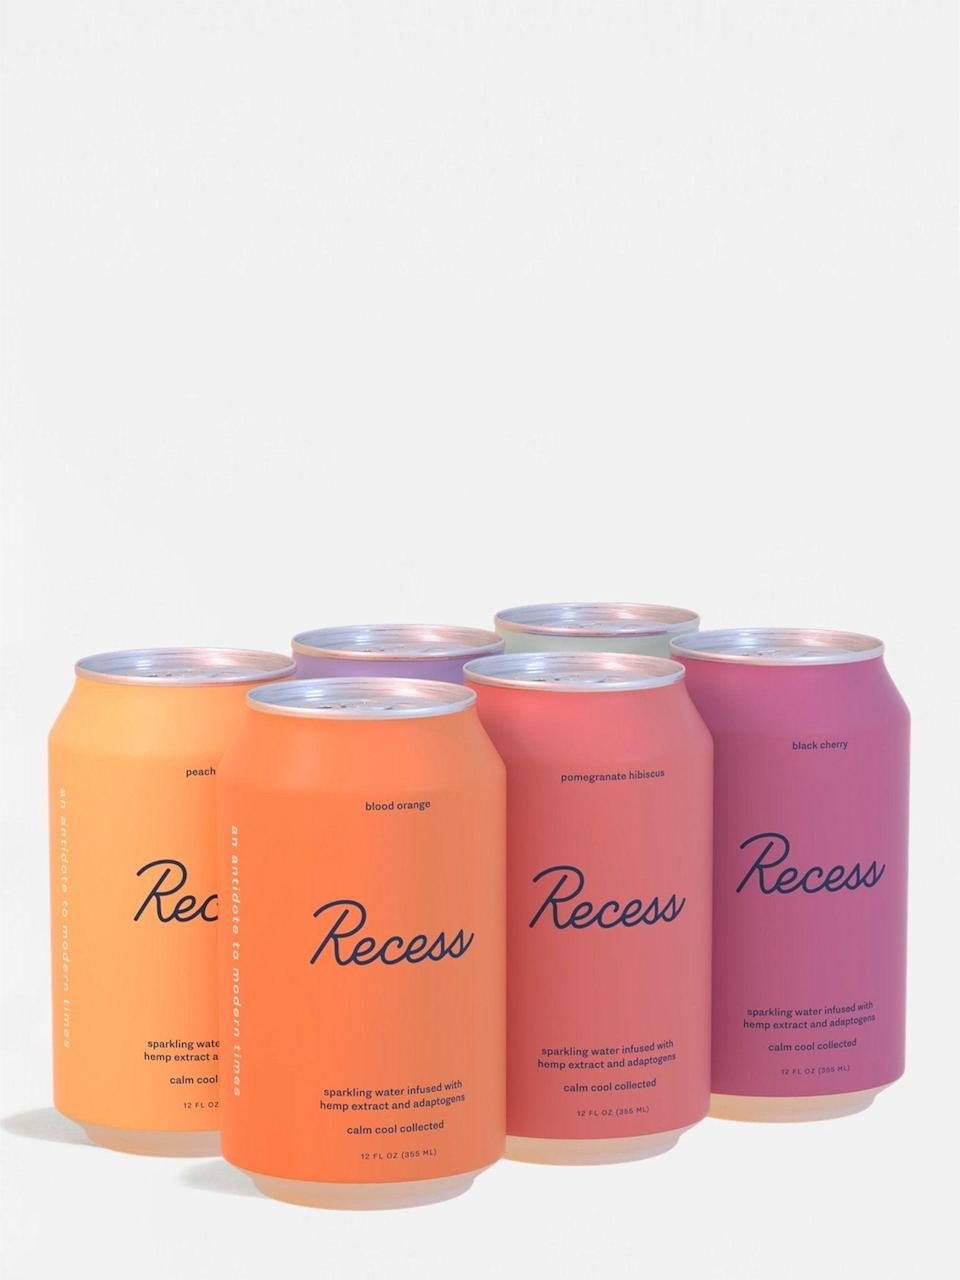 """<h2>Recess Variety Sampler</h2><br>Infused with CBD, Recess's sampler pack is brimming with six flavors of balanced, bubbly, tasty fun—no booze necessary. <br><br><strong>Recess</strong> Recess Variety Sampler, $, available at <a href=""""https://go.skimresources.com/?id=30283X879131&url=https%3A%2F%2Fstandarddose.com%2Fcollections%2Fplant-based-drinks%2Fproducts%2Frecess-variety-sampler"""" rel=""""nofollow noopener"""" target=""""_blank"""" data-ylk=""""slk:Standard Dose"""" class=""""link rapid-noclick-resp"""">Standard Dose</a>"""